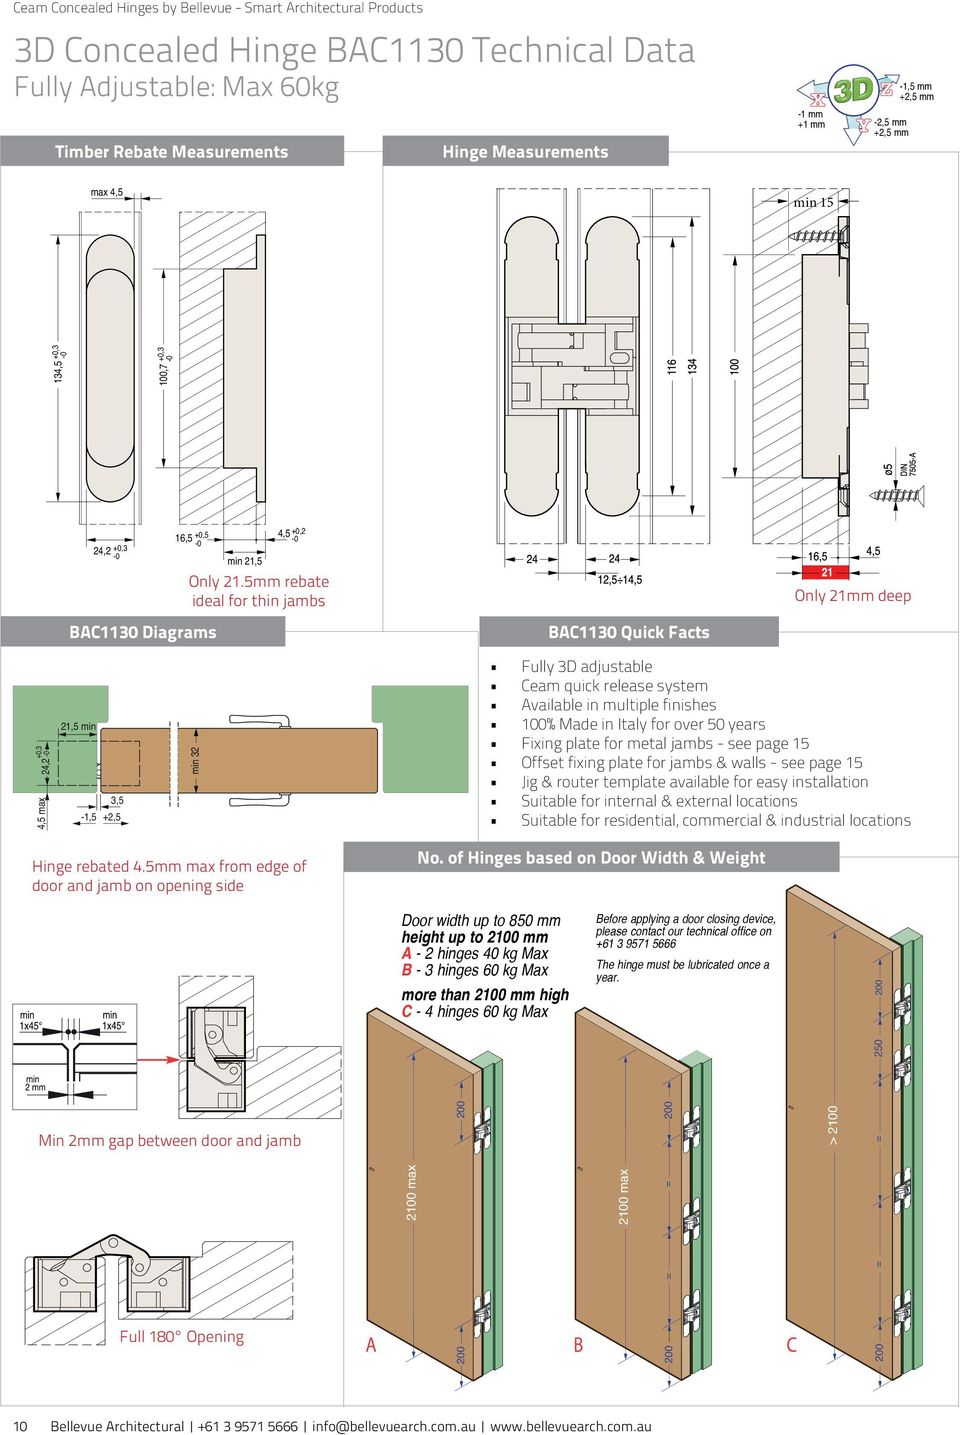 5mm 4,5 4,5 +,5 max from edge of - door and jamb on -opening side min 21,5 3,5-1,5 +2,5 min 32 21 max 134,5 +,3-1,7 +,3 - in 2 24,2 +,3-16,5 +,5-113 Diagrams min 21,5 4,5 +,2 - Only 21.